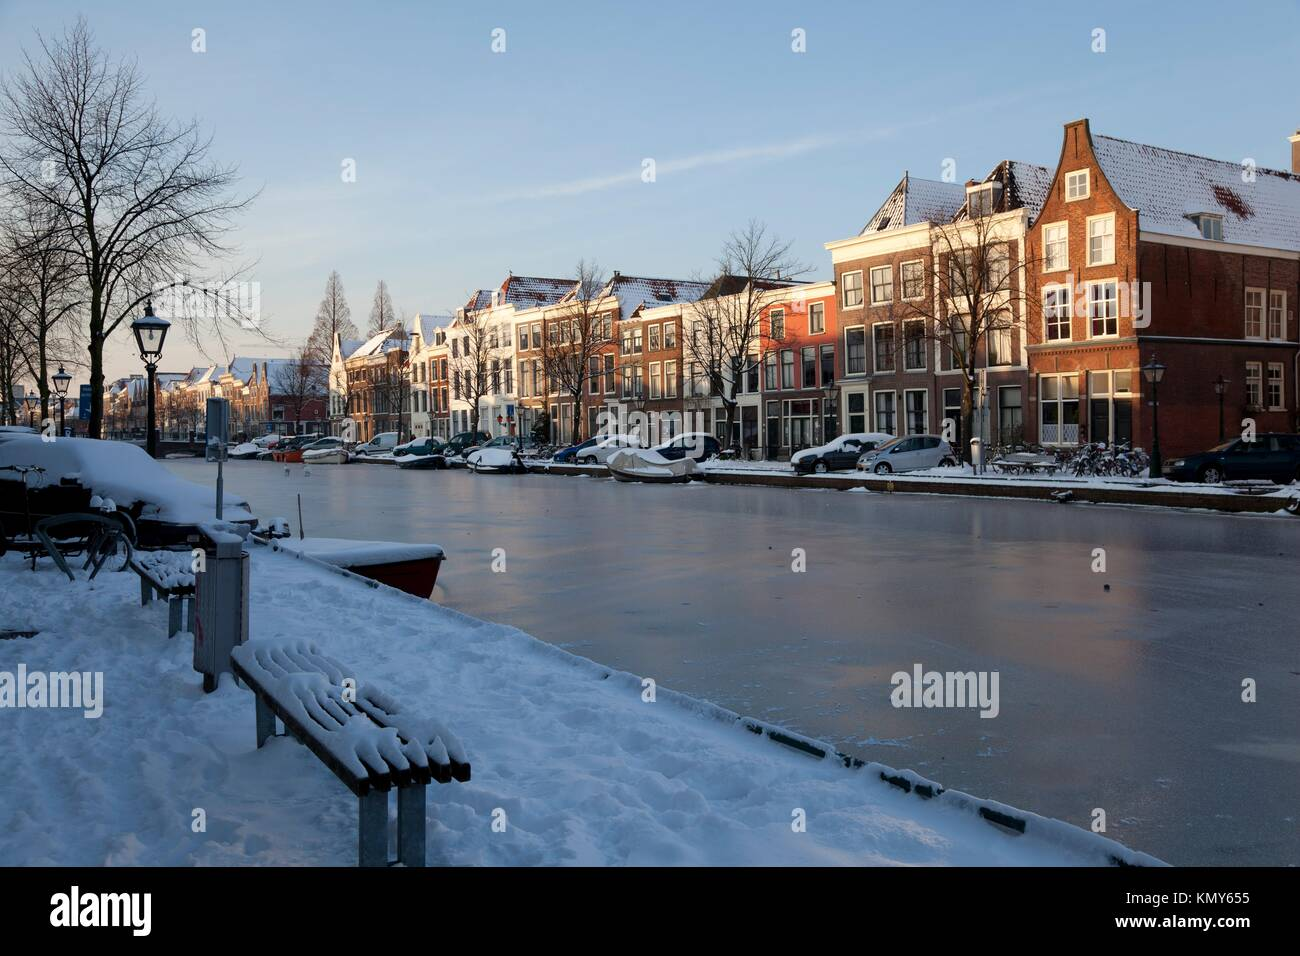 Frozen canal in winter in Holland - Stock Image